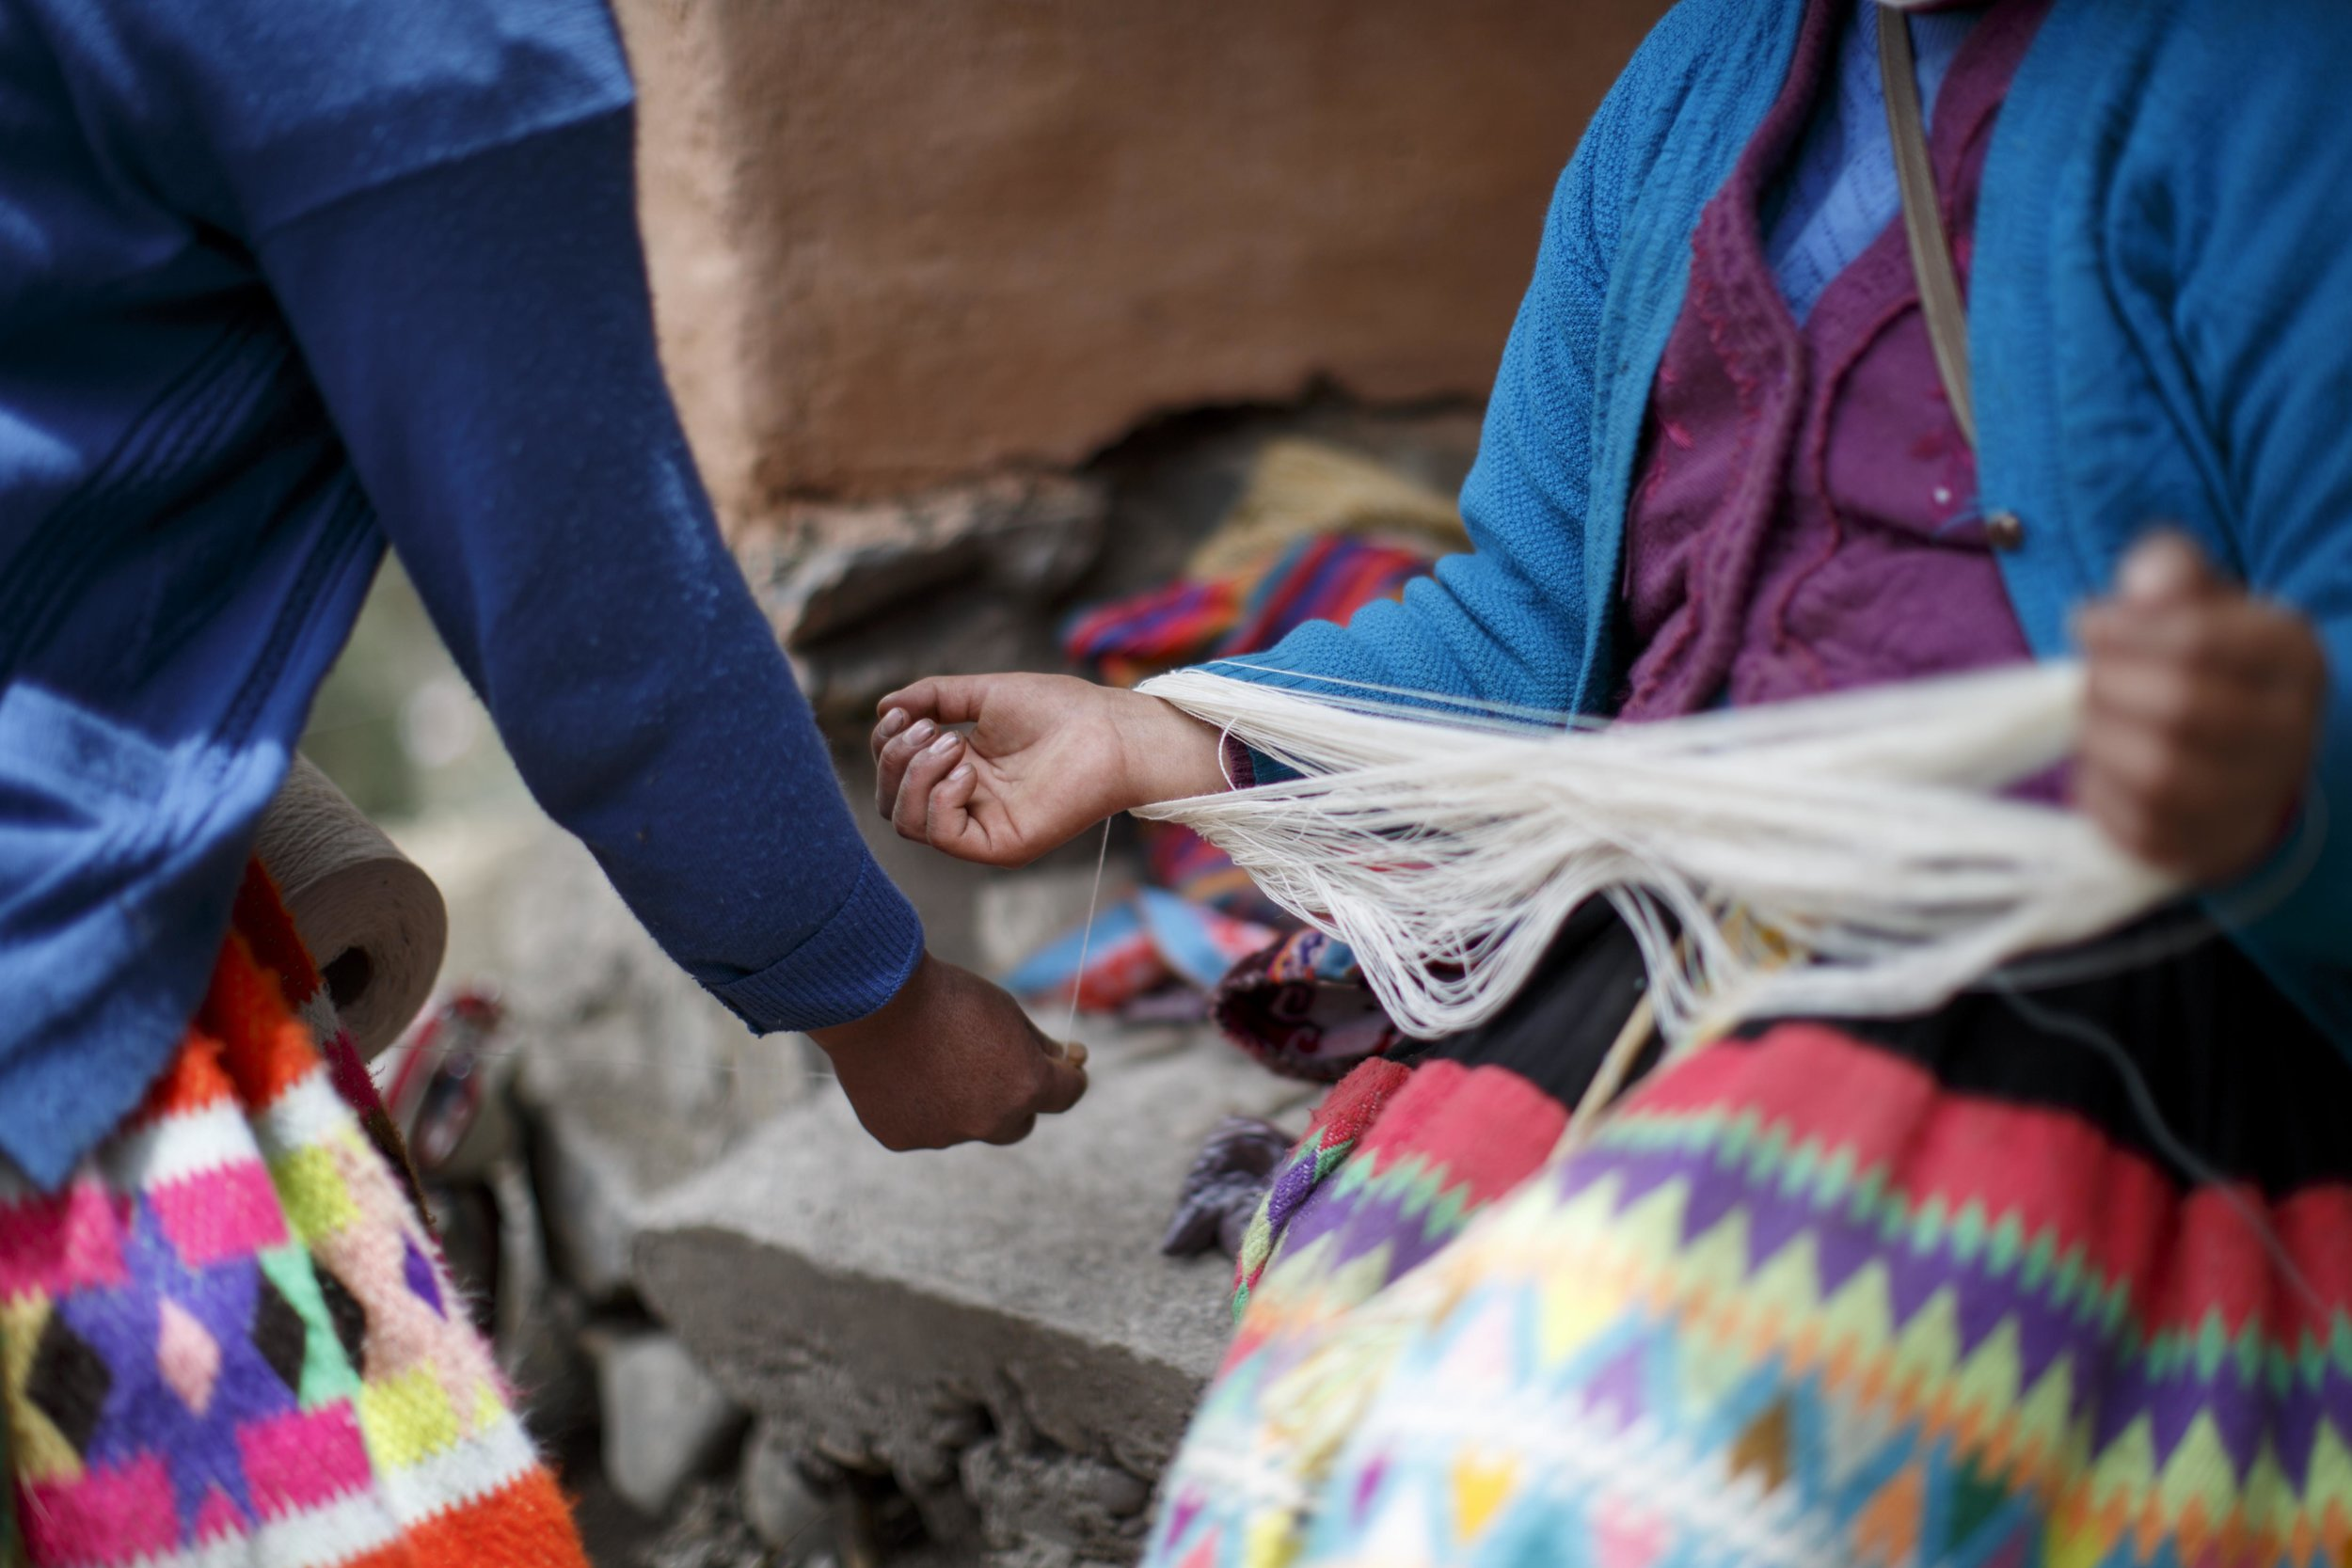 Artisans collecting the threads in a triangular pattern to stretch them across the backstrap loom.